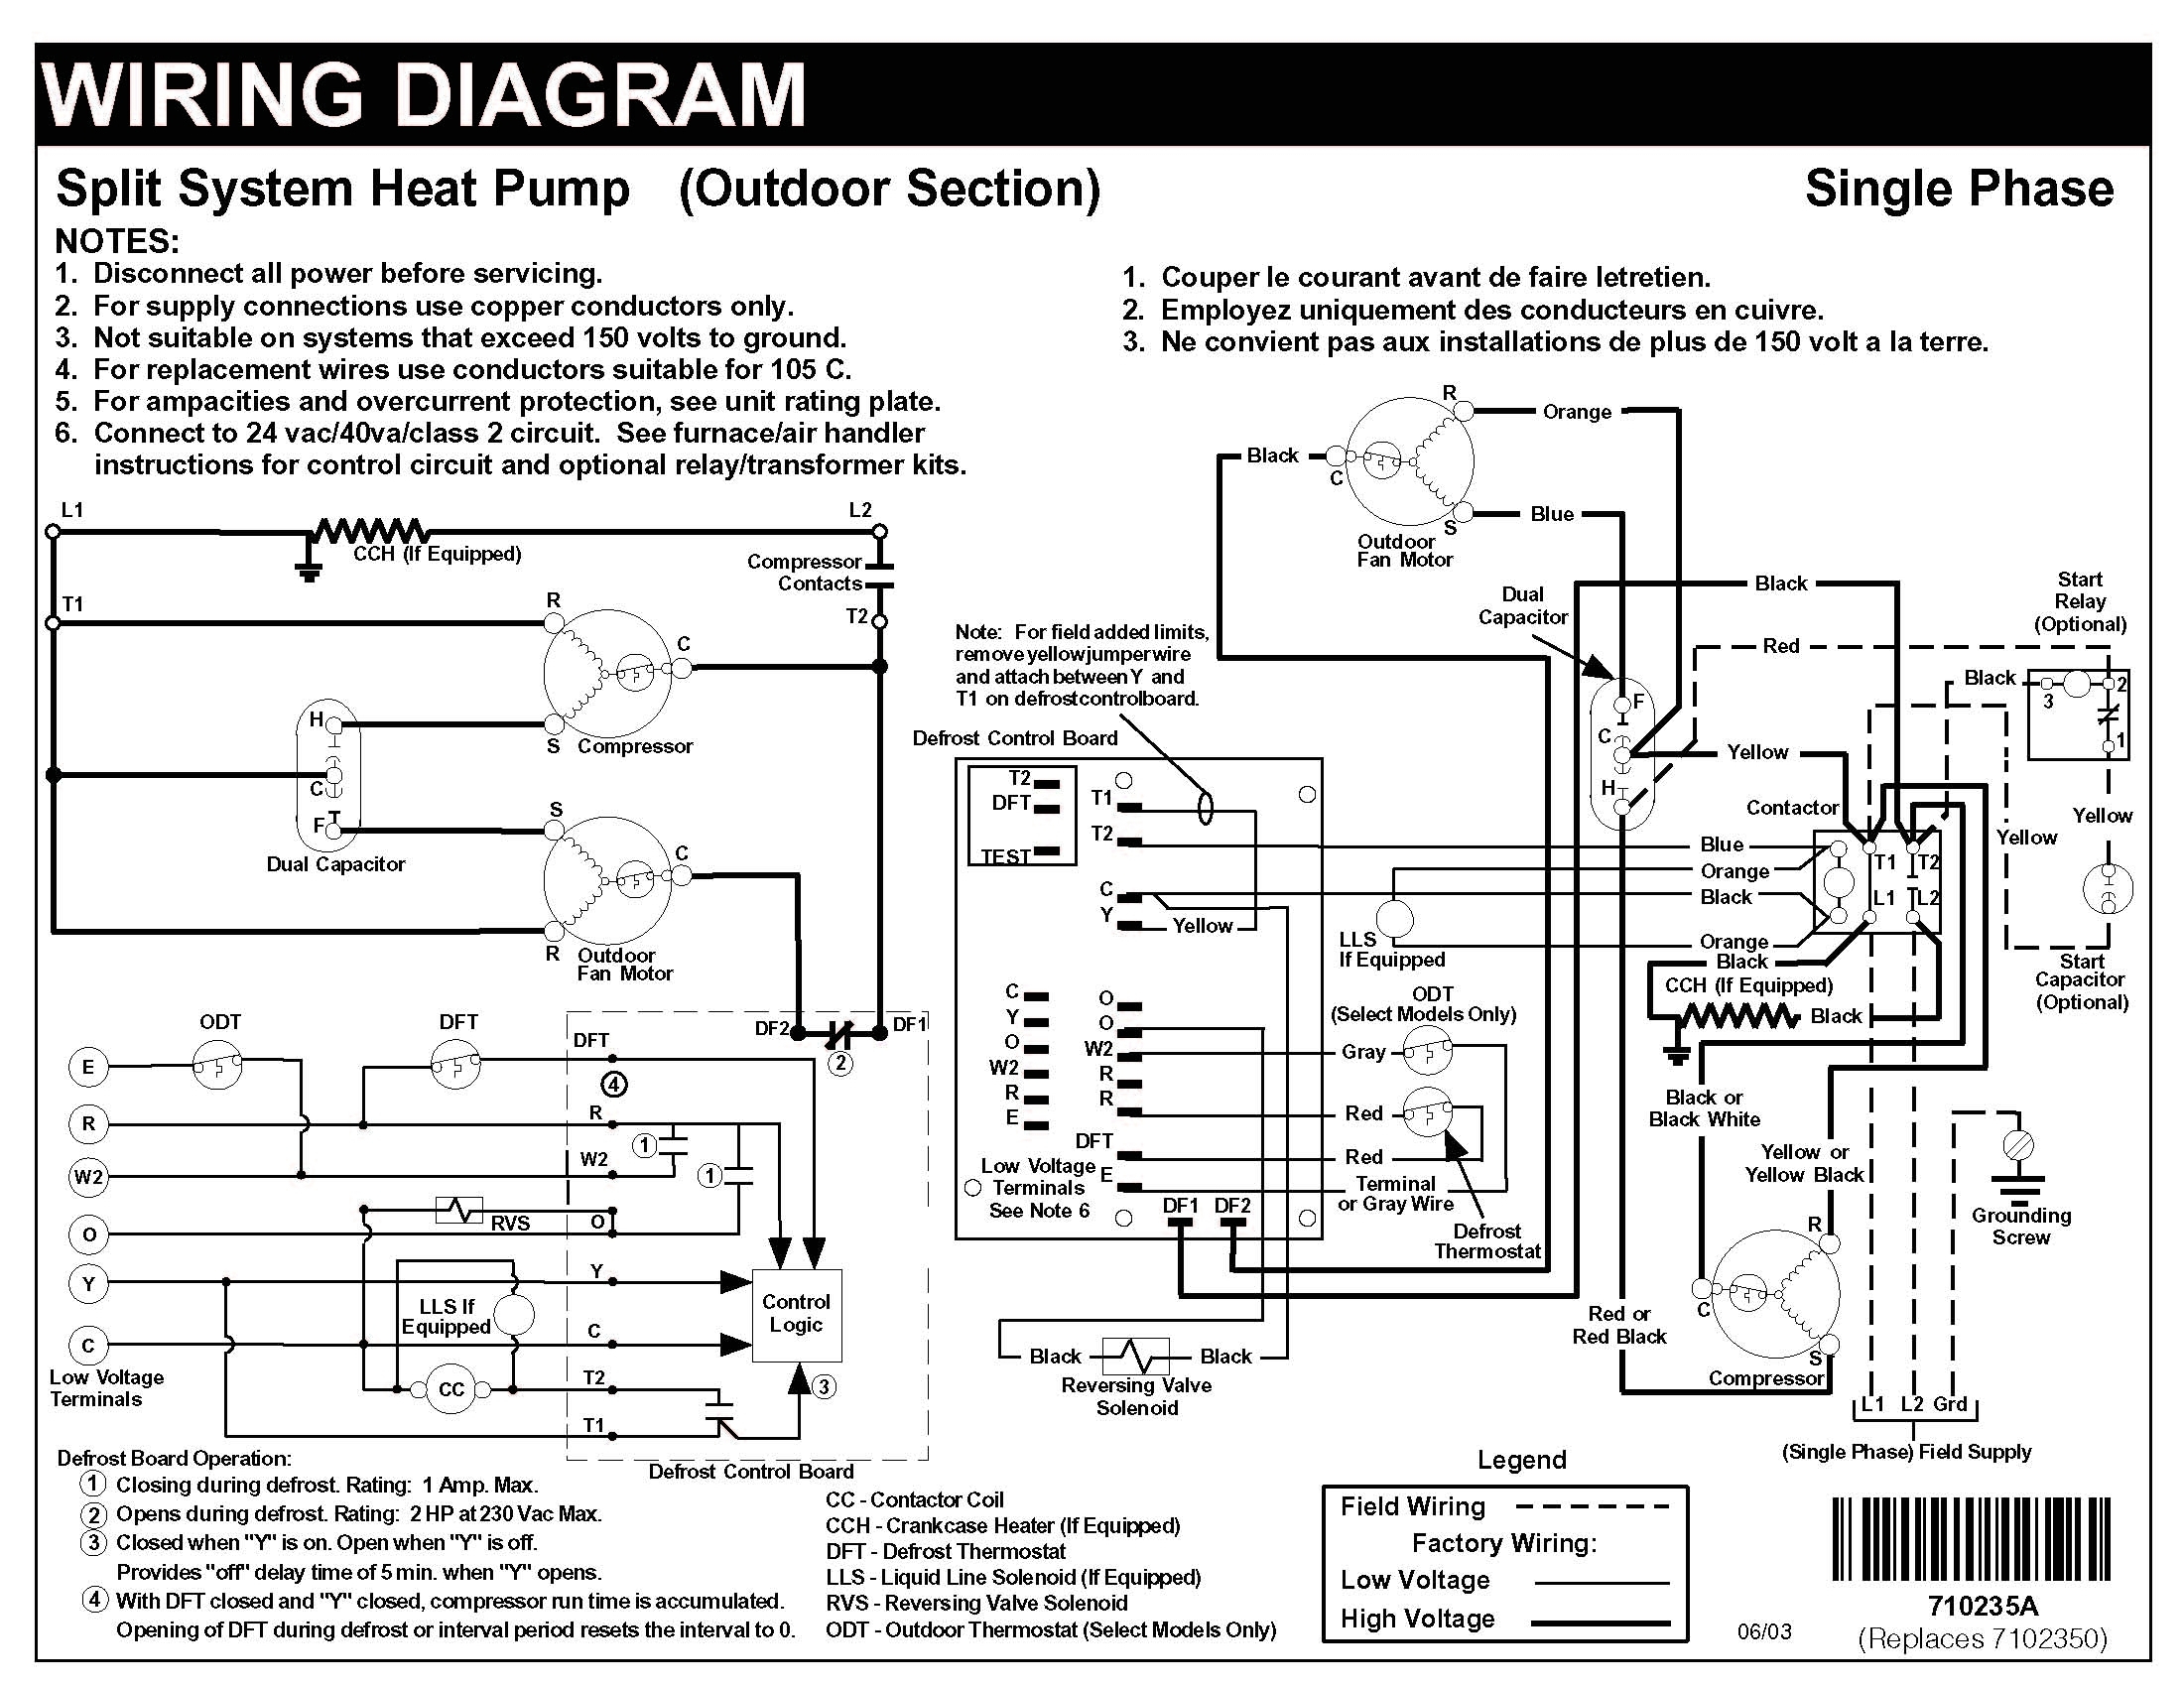 Heat Pump Wiring Schematic - Data Wiring Diagram Today - Heat Pump Wiring Diagram